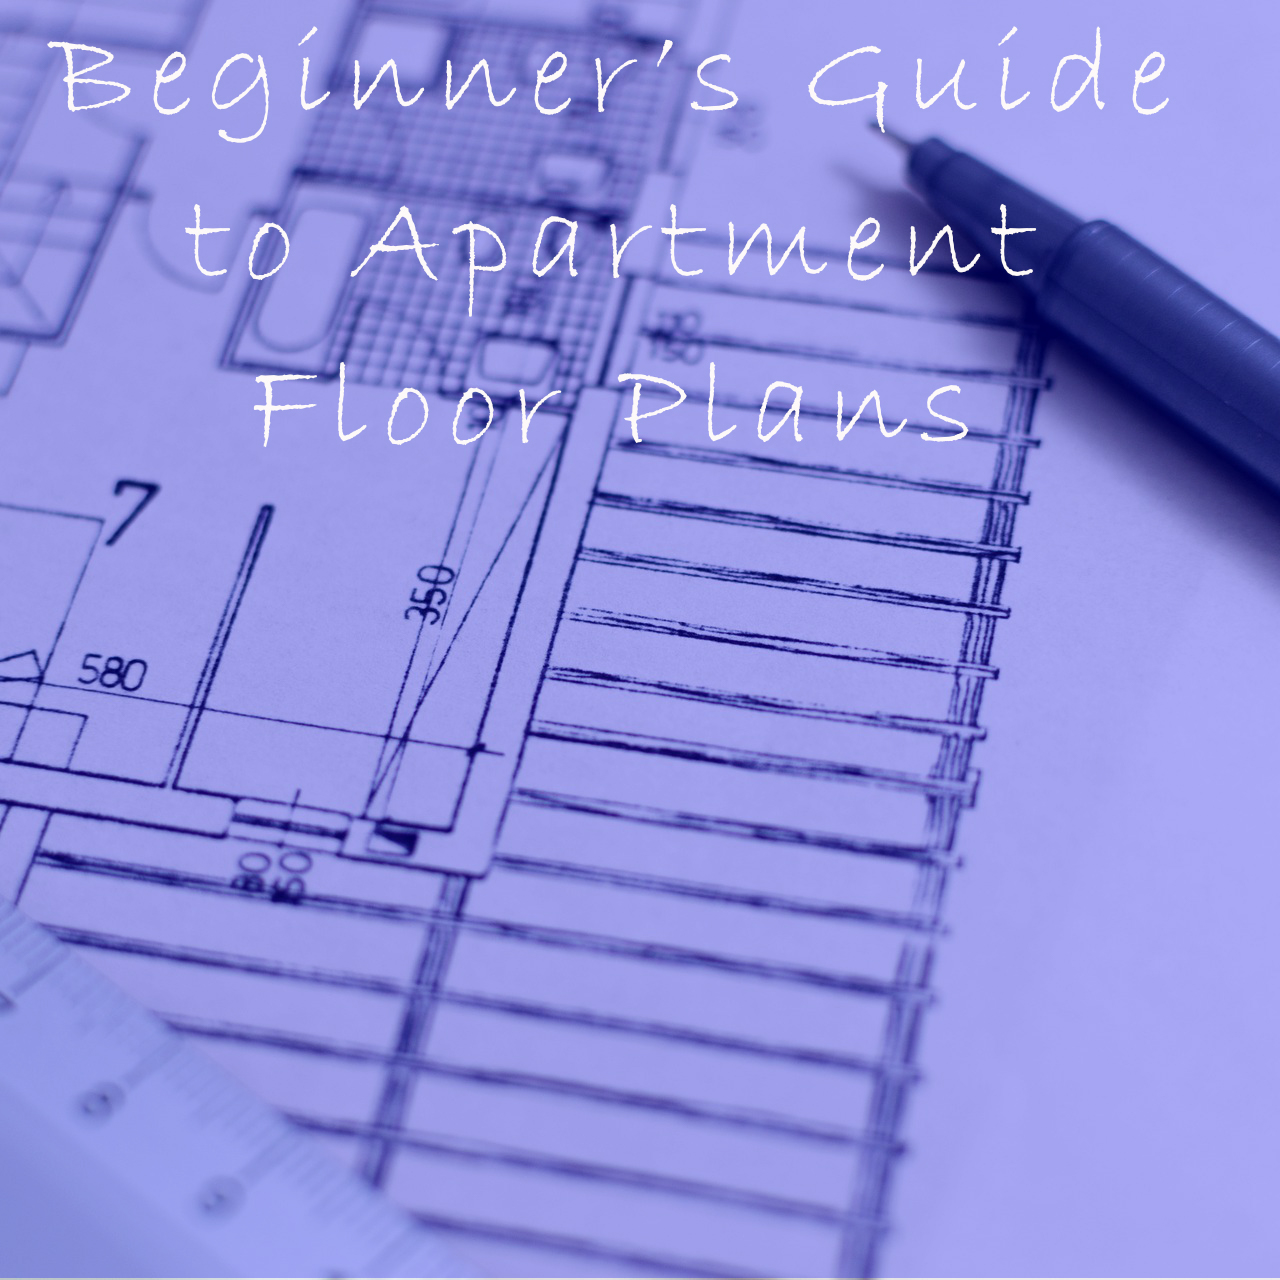 Apartment Floor Plans for Beginner's